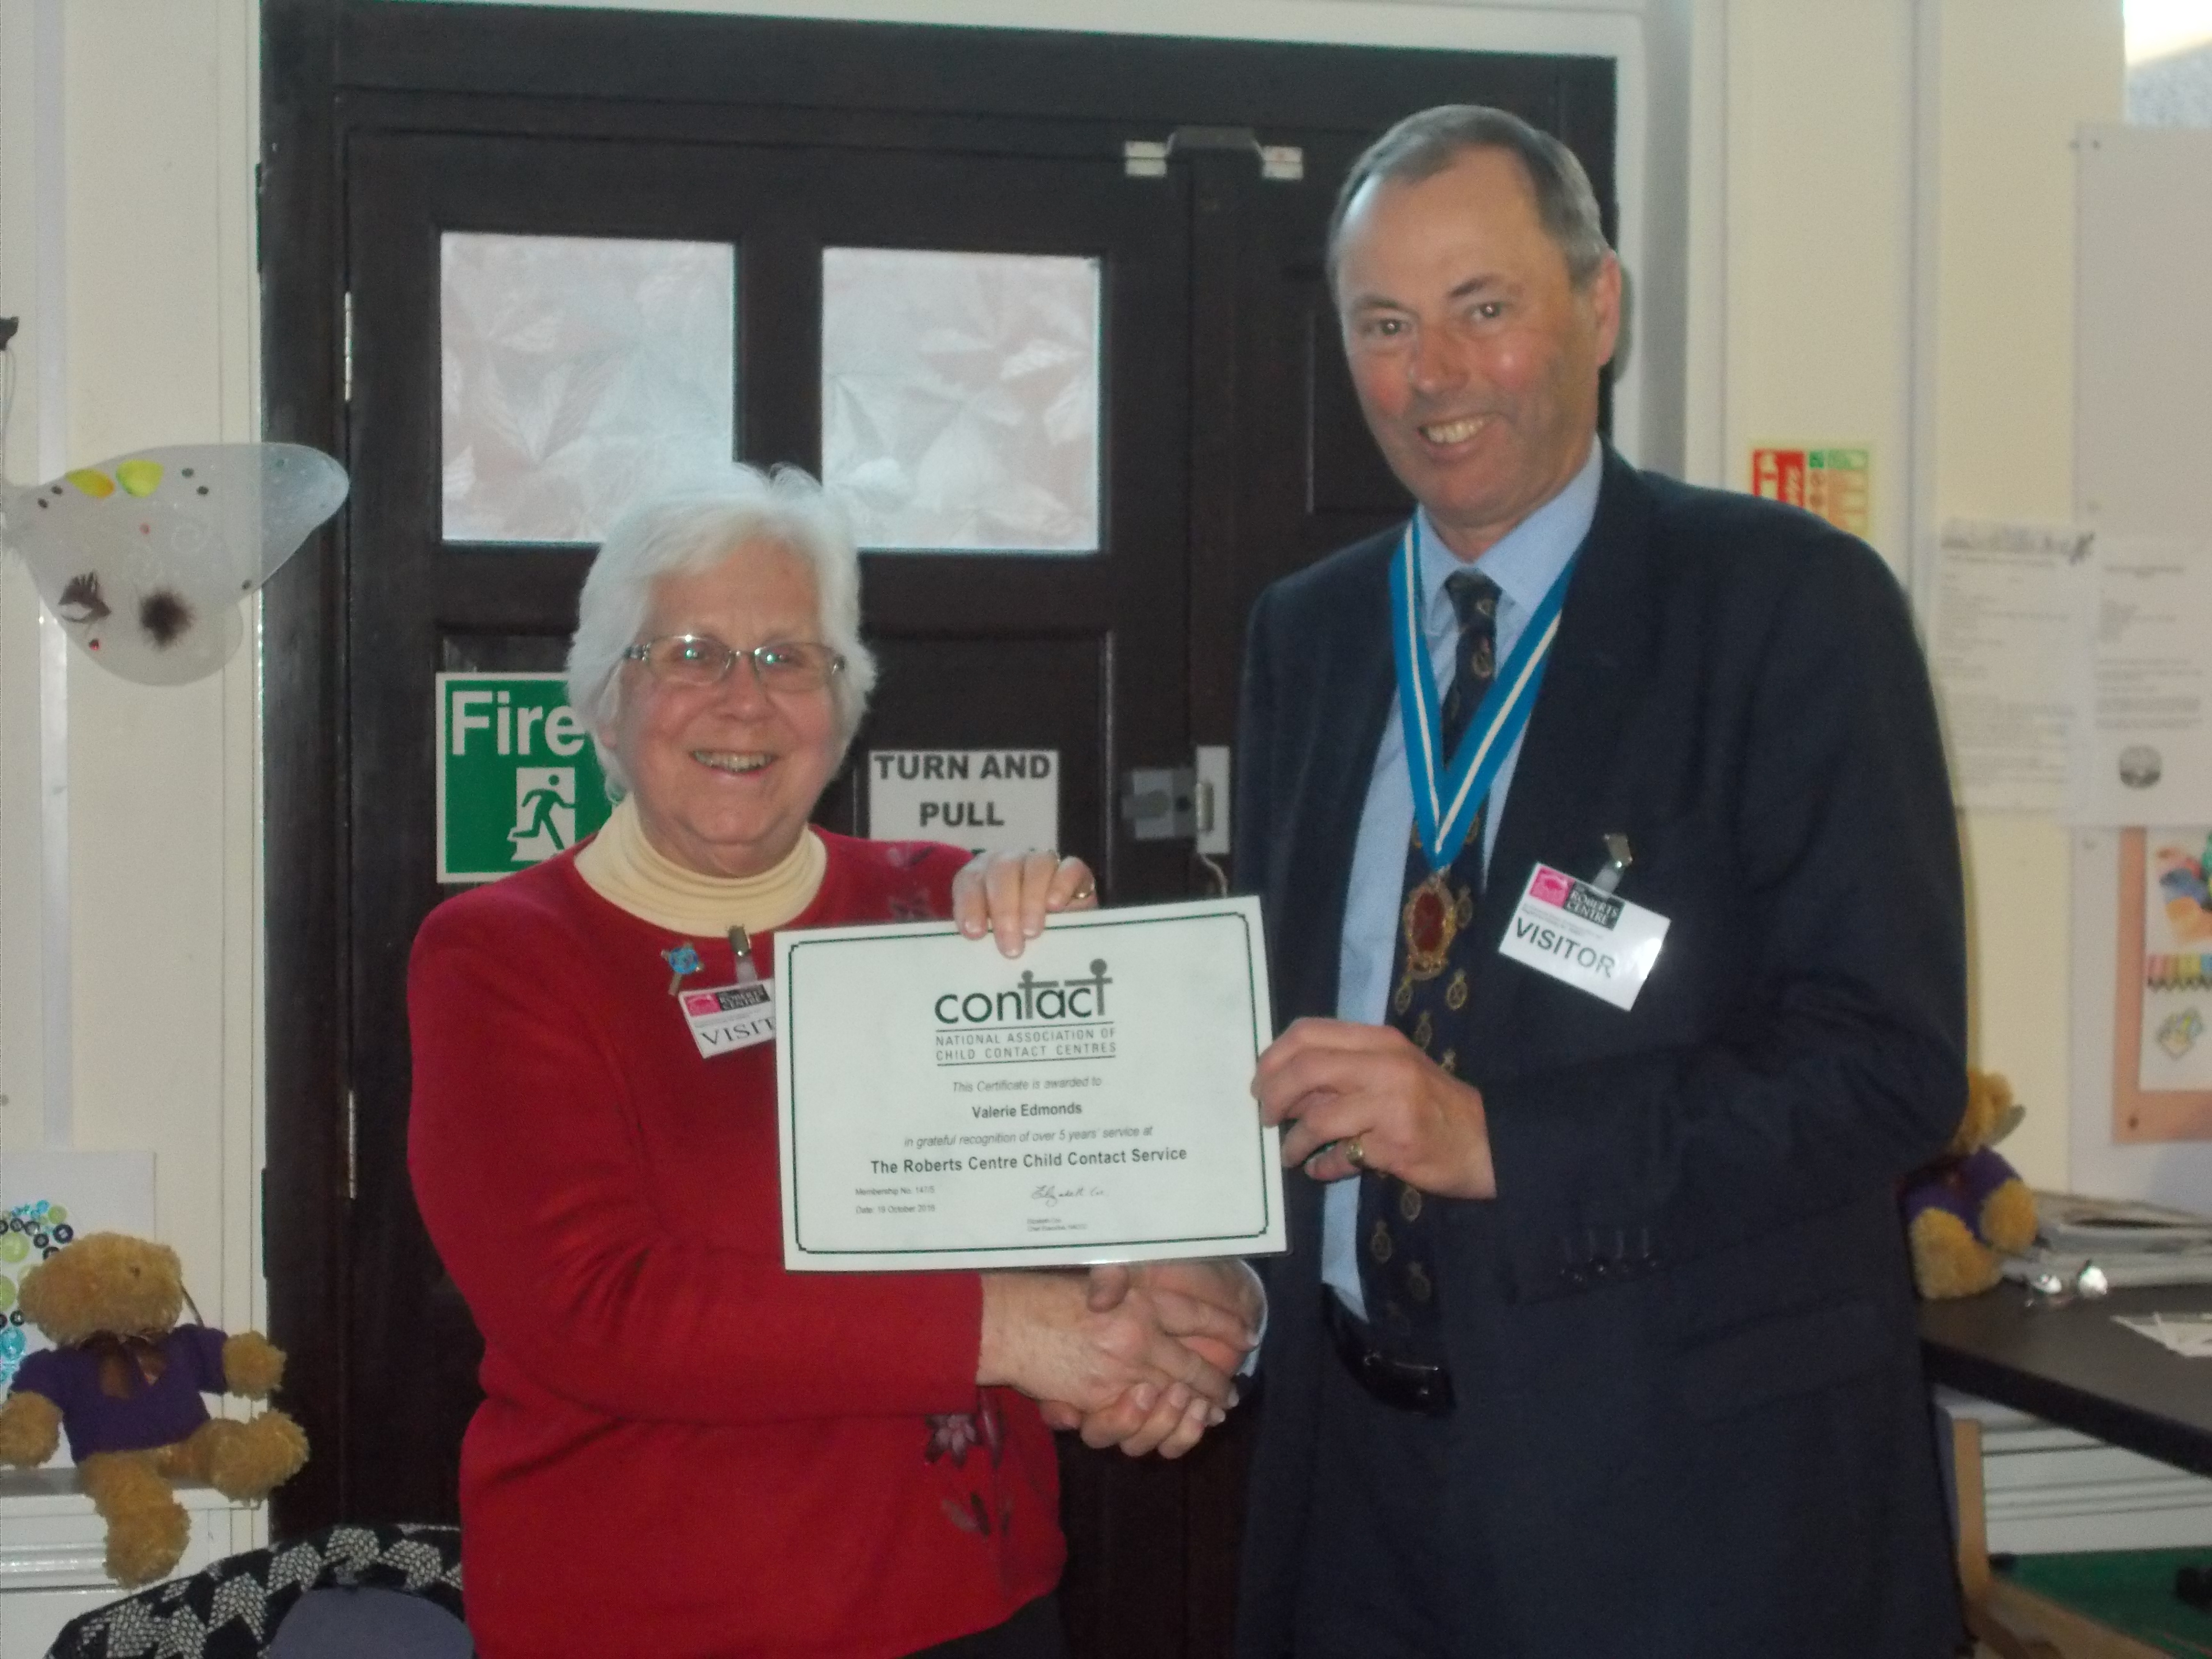 High Sherriff gives a long service certificate to Val who has volunteered at the Roberts Child Contact Centre for over 10 years.